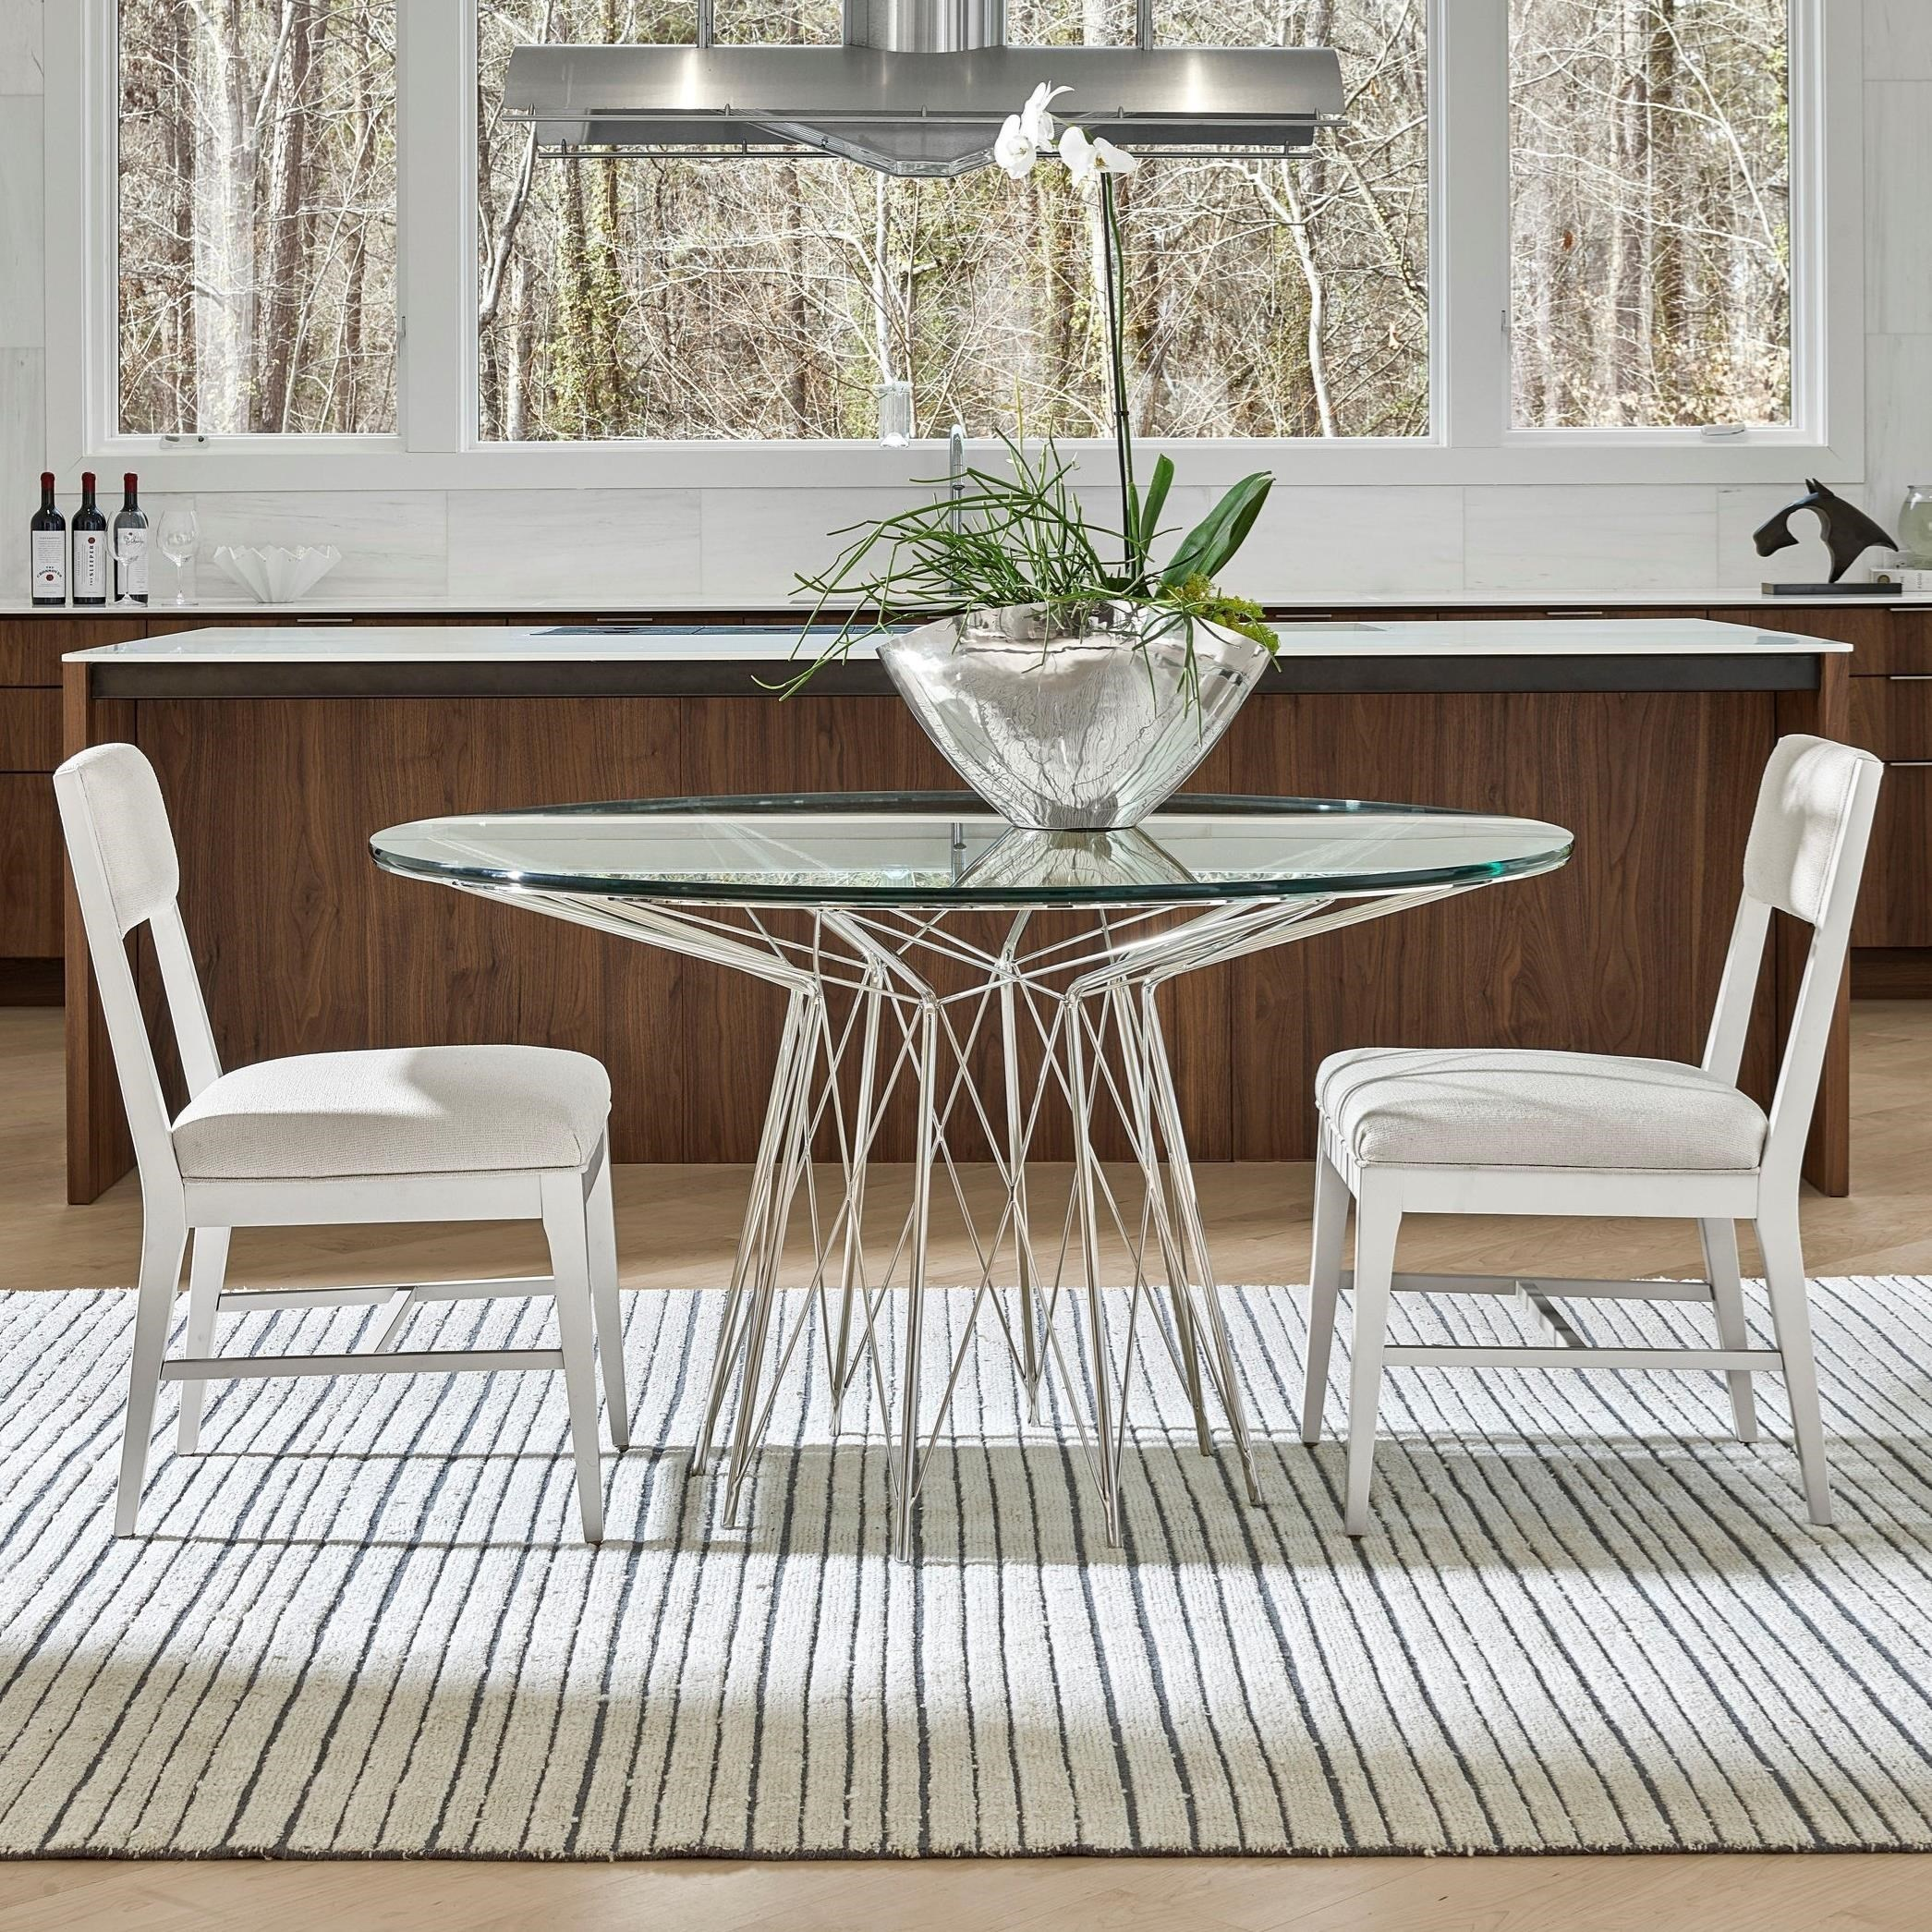 3-Piece Axel Dining Table Set